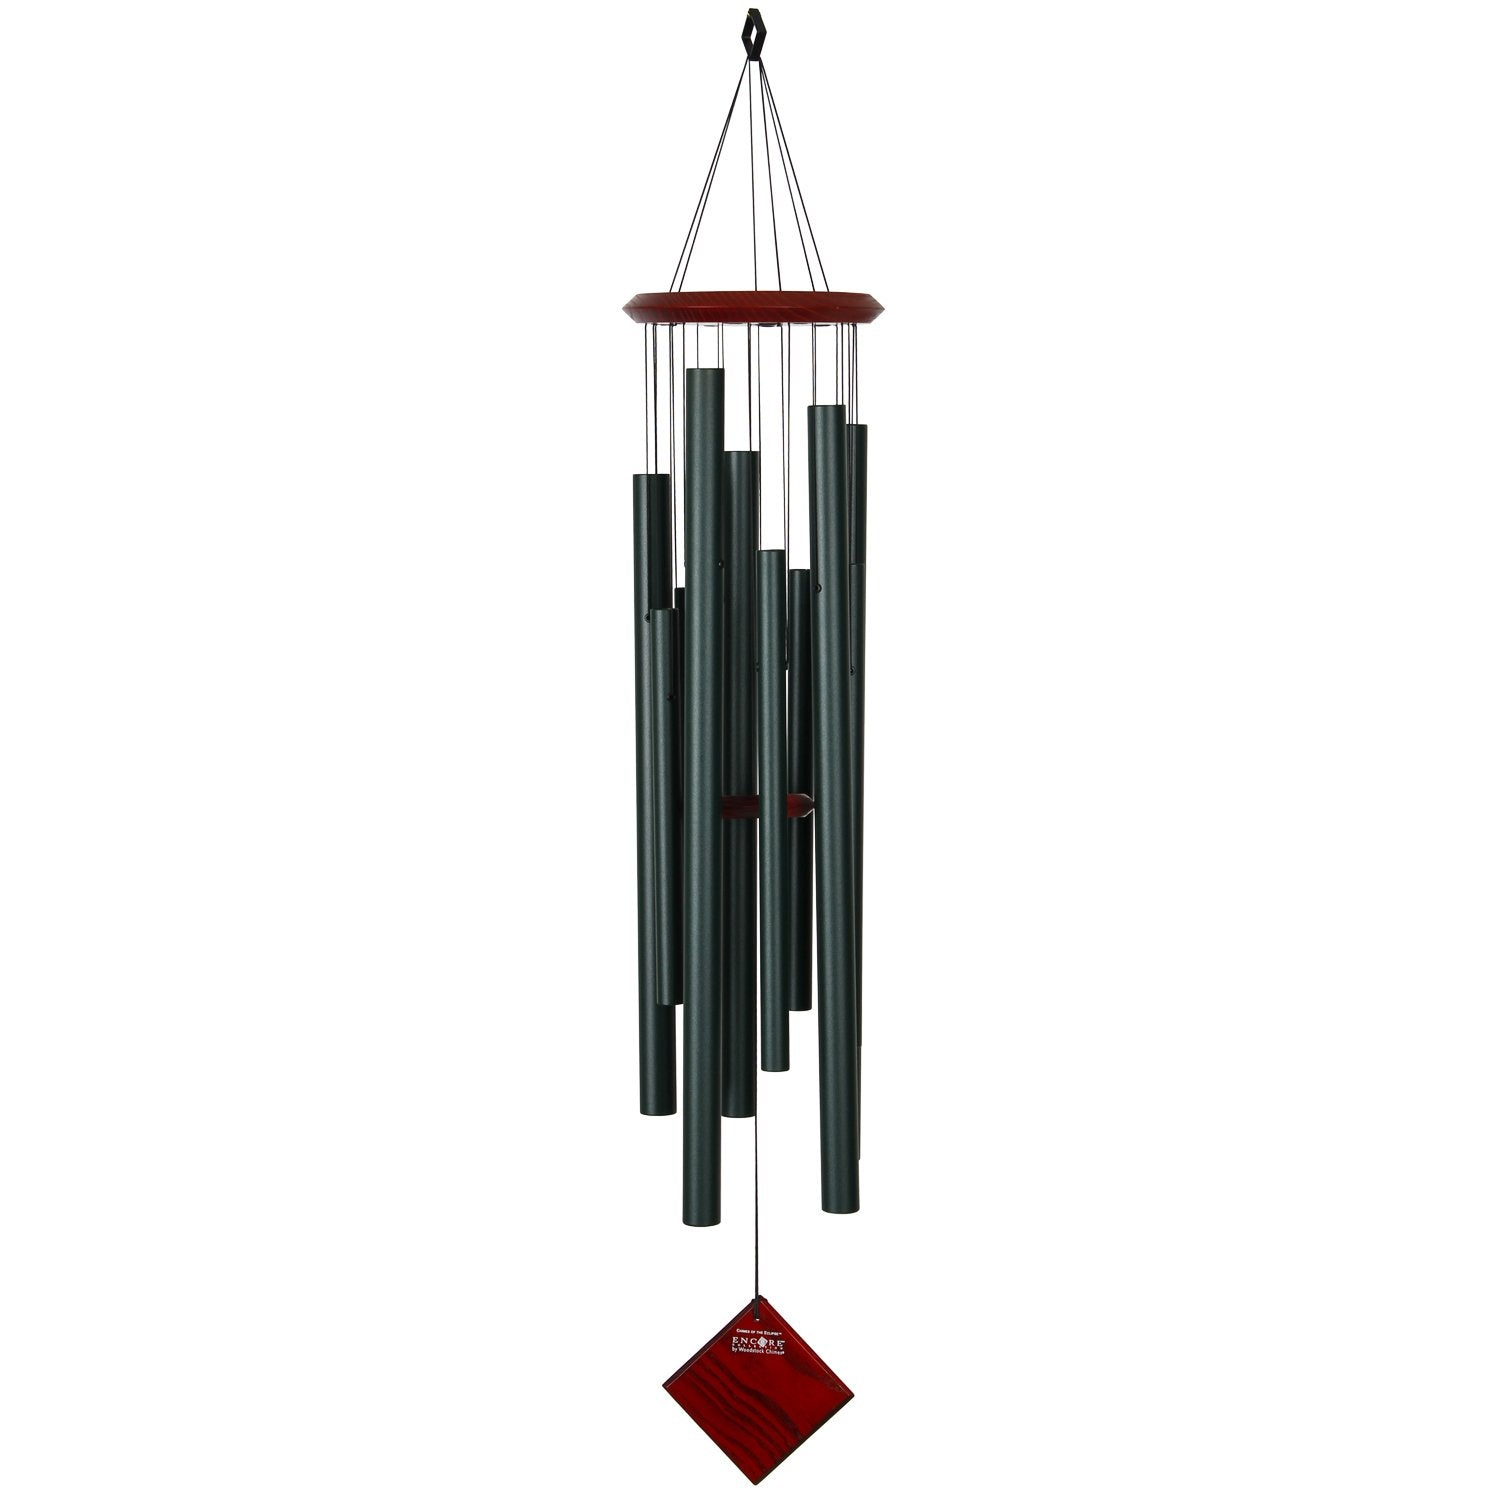 Encore Chimes of The Eclipse - Evergreen full product image